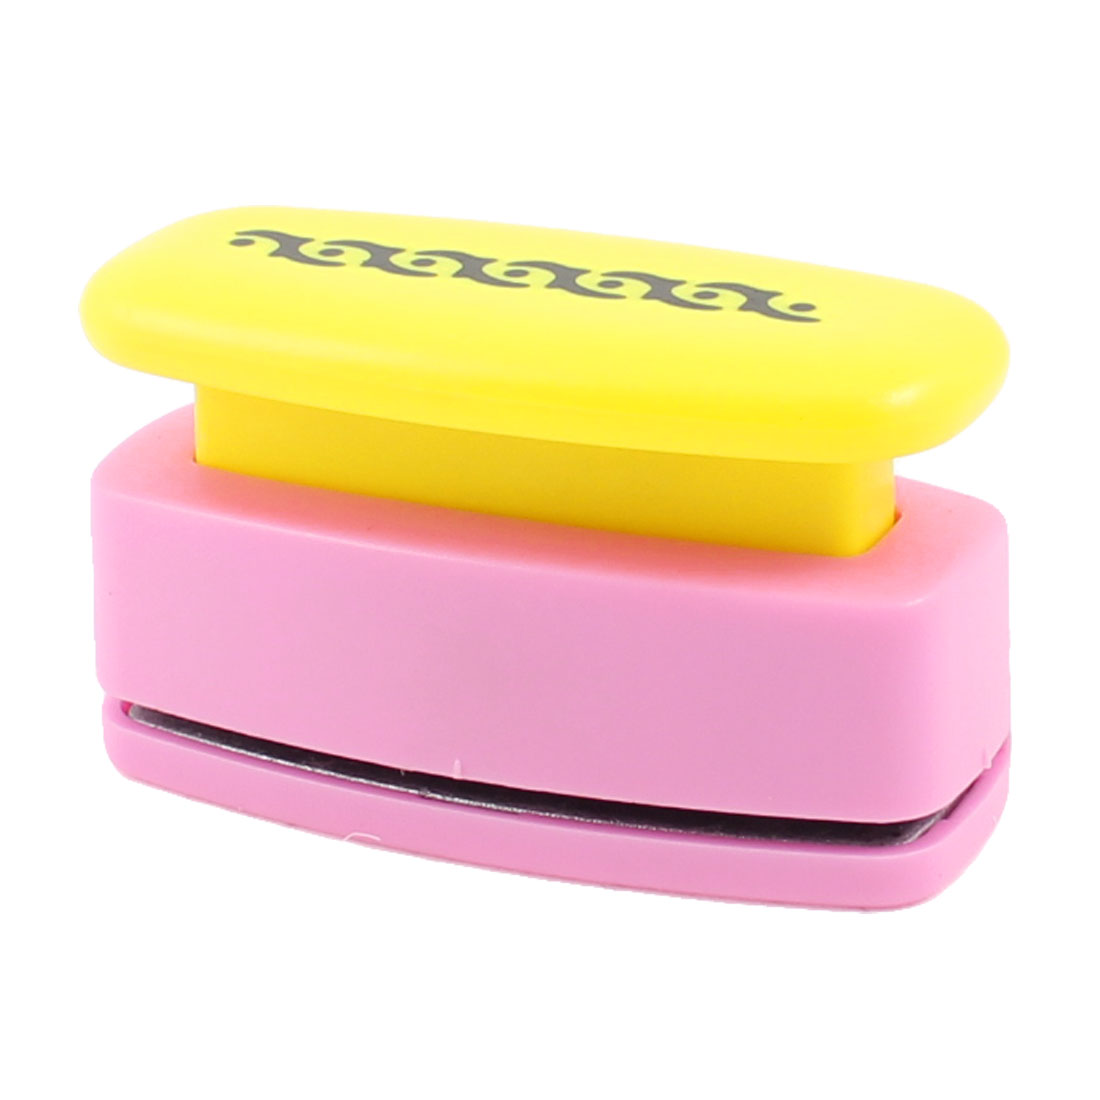 Plastic Housing Novelty Printed Yellow Pink Paper Card Craft Punch Stamp